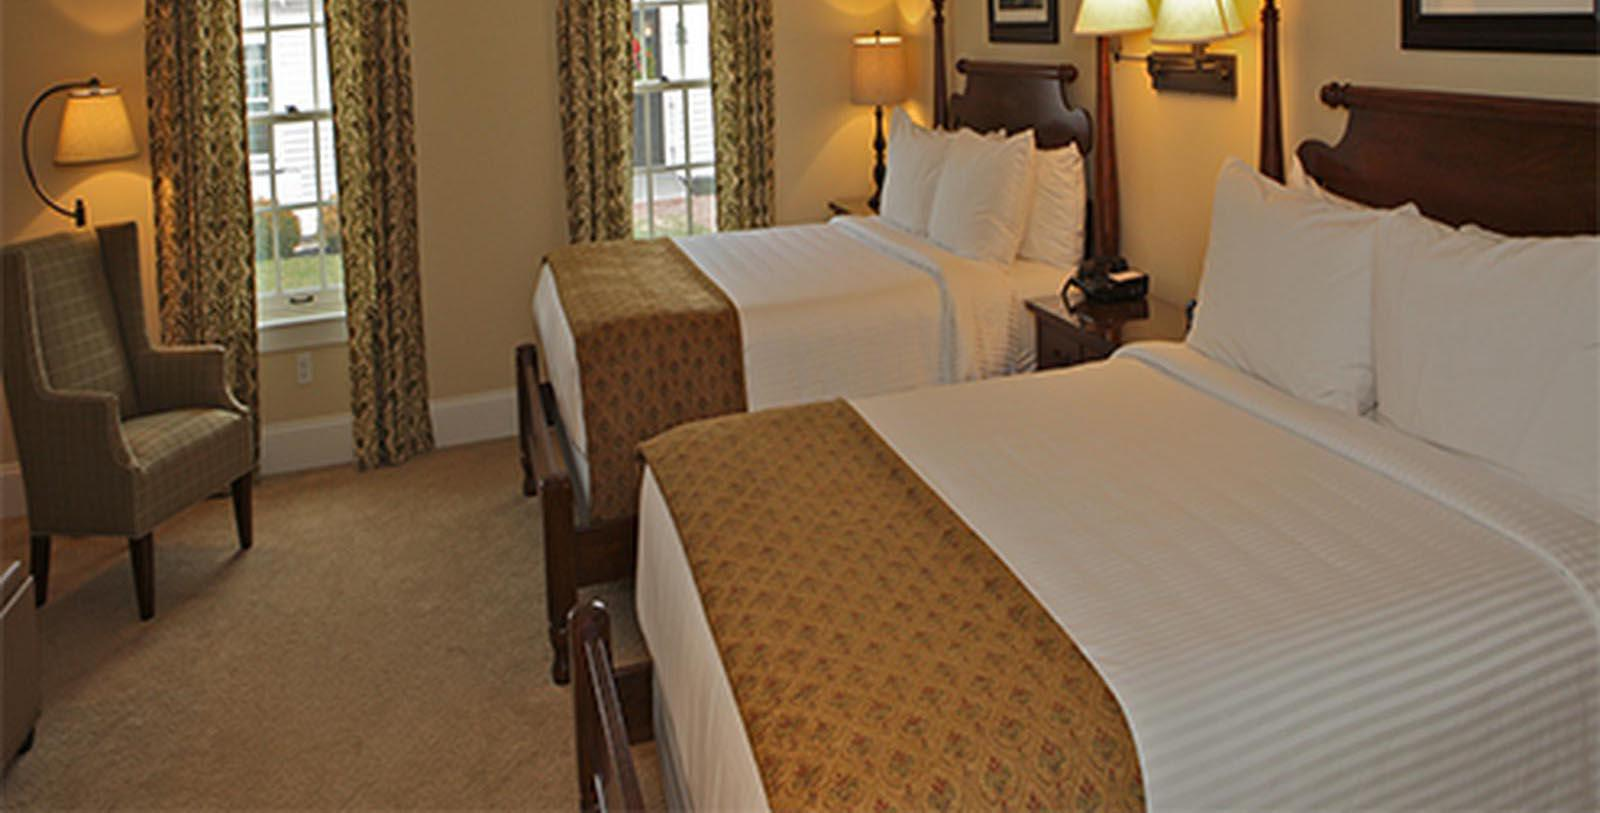 Image of Guestroom Publick House Historic Inn, 1771, Member of Historic Hotels of America, in Sturbridge, Massachusetts, Experience